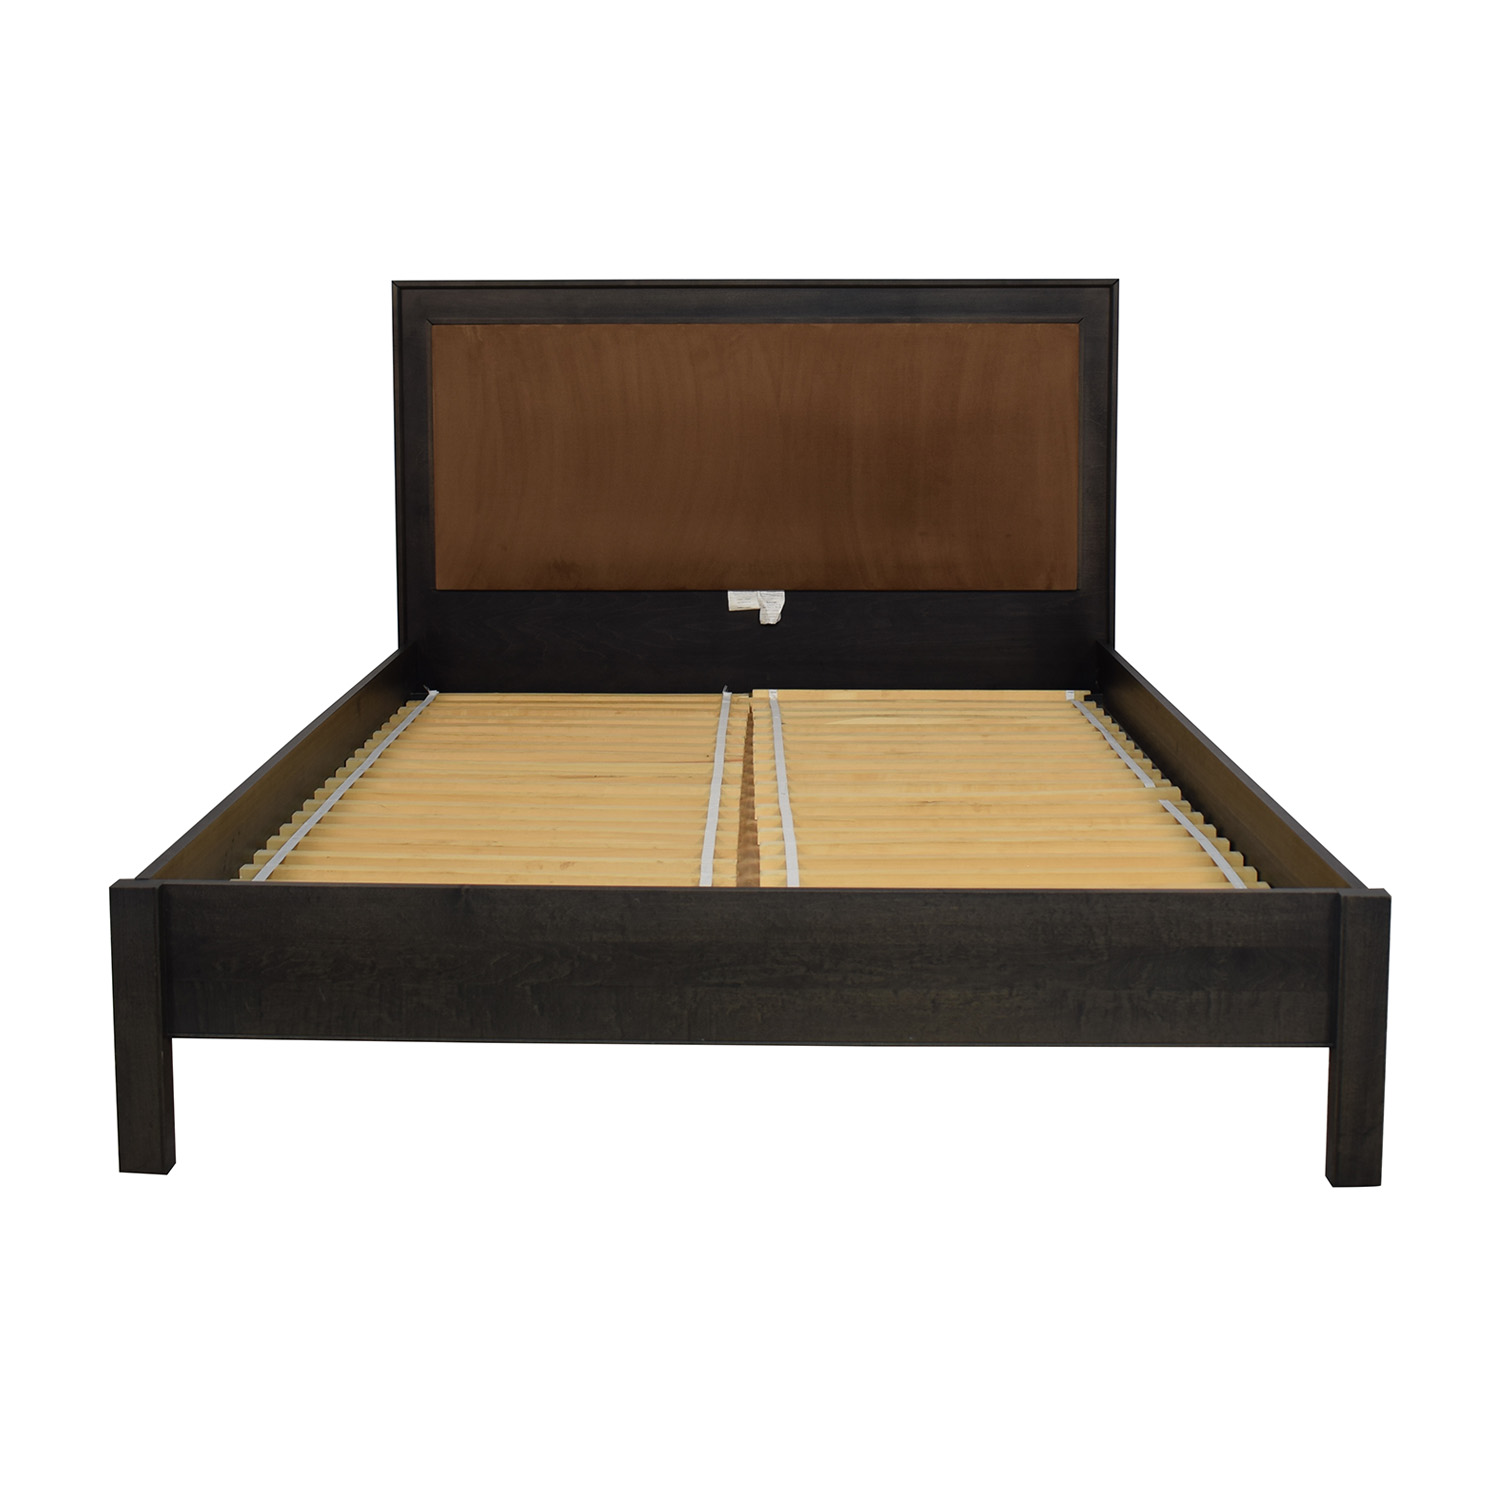 Crate & Barrel Crate & Barrel Baronet Queen Bed coupon